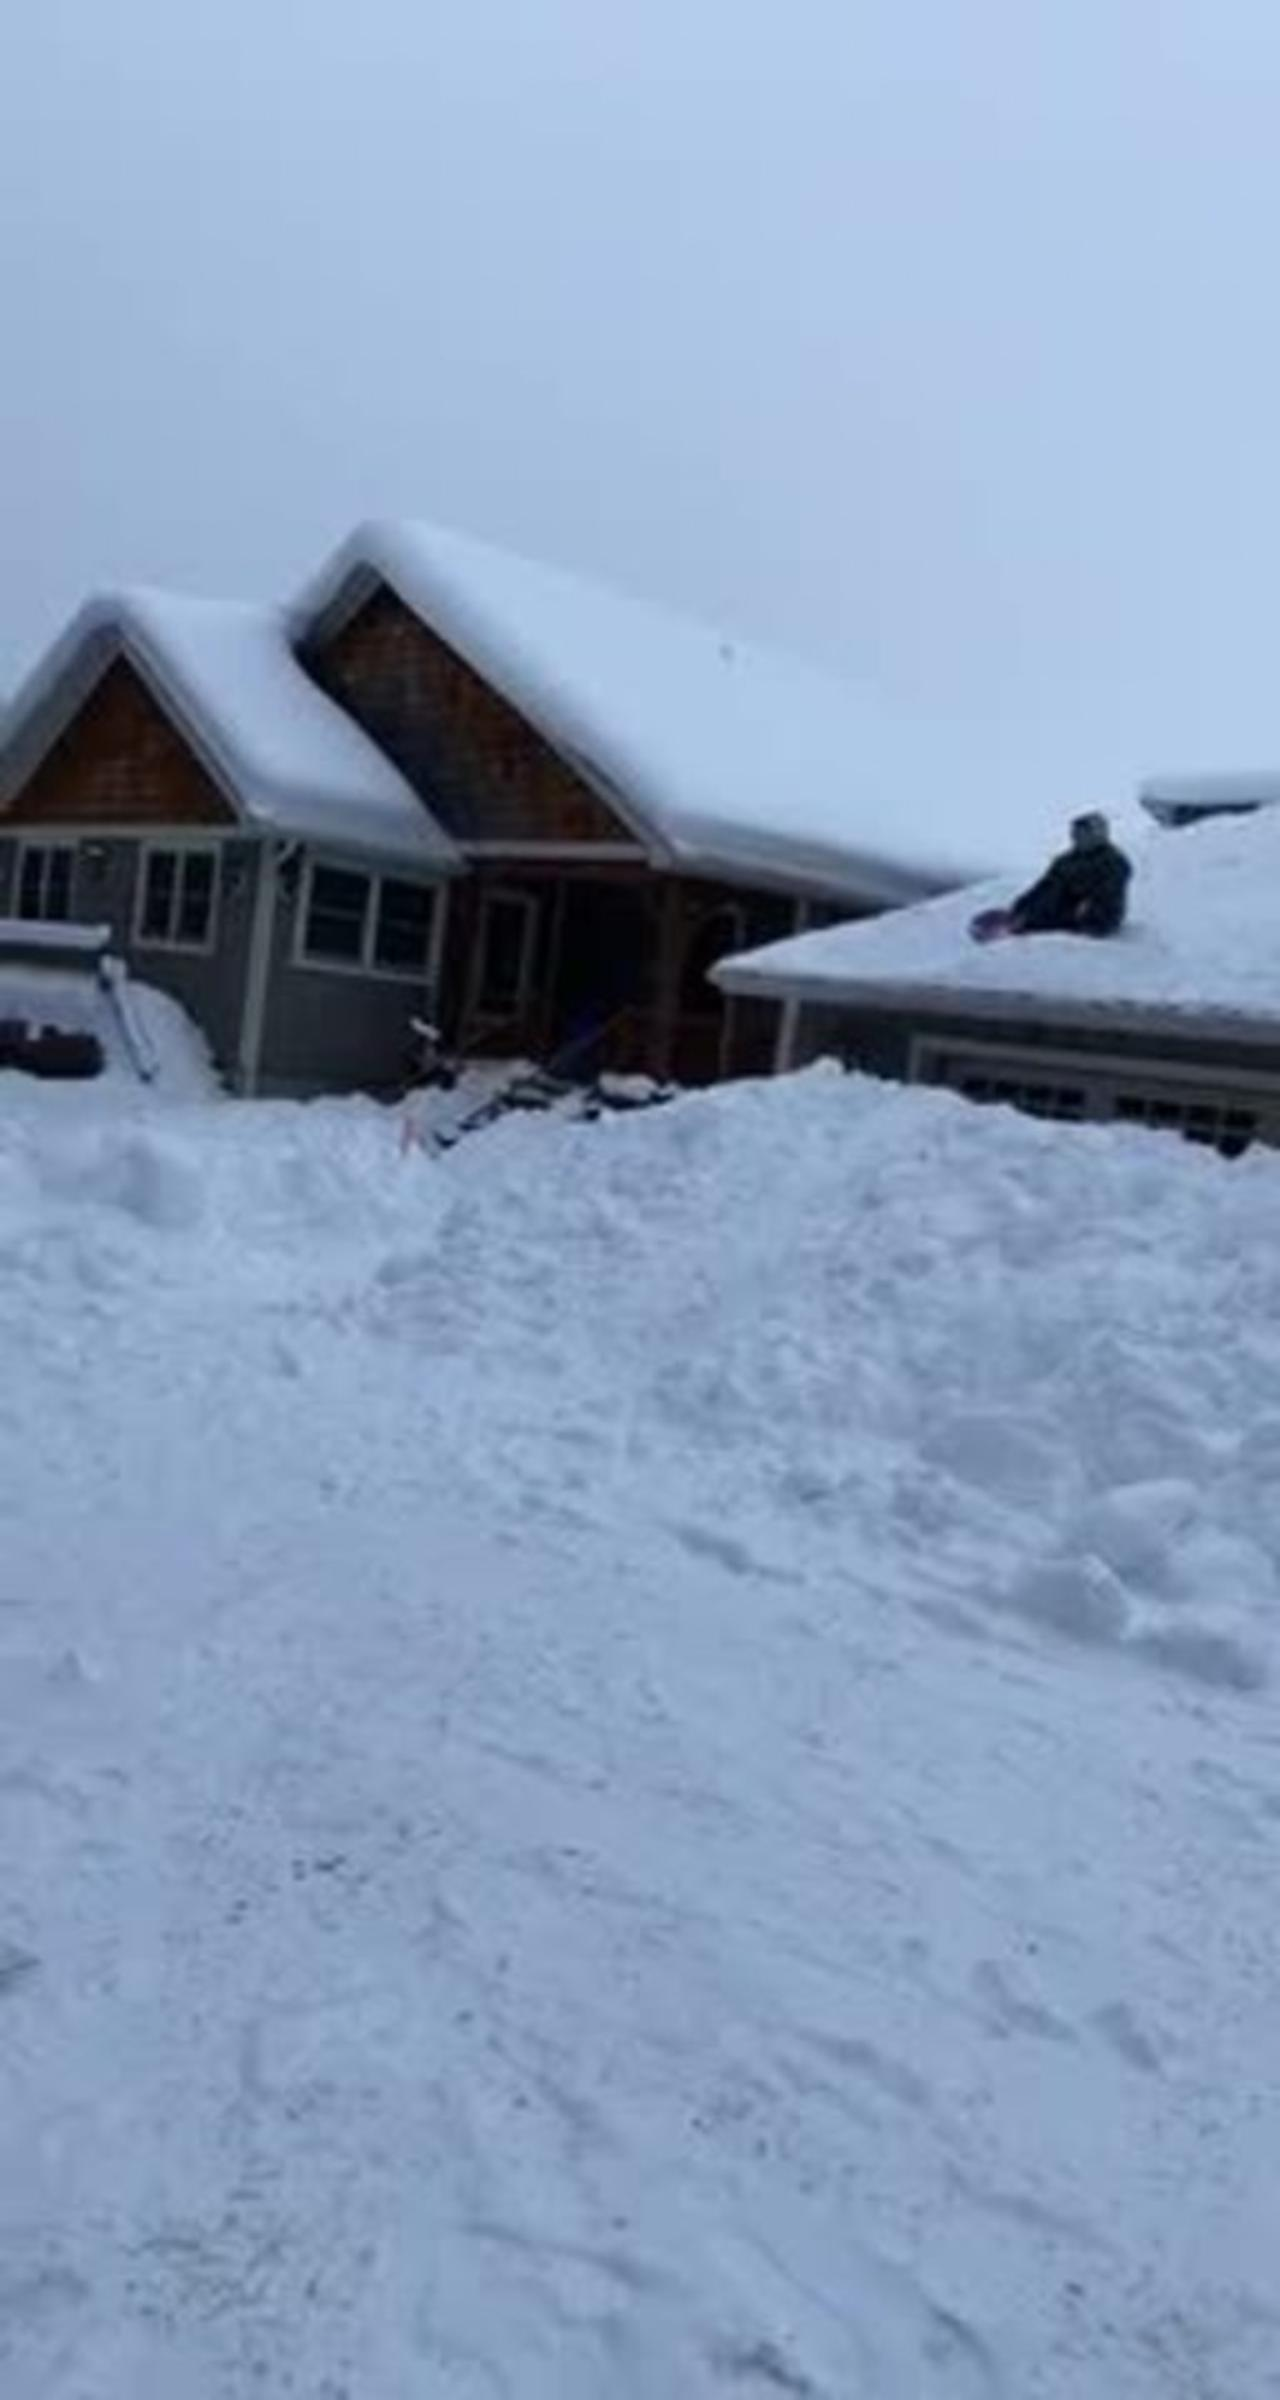 Man Sleds Down Sloped Roof of the House and Faceplants to the Snowy Ground